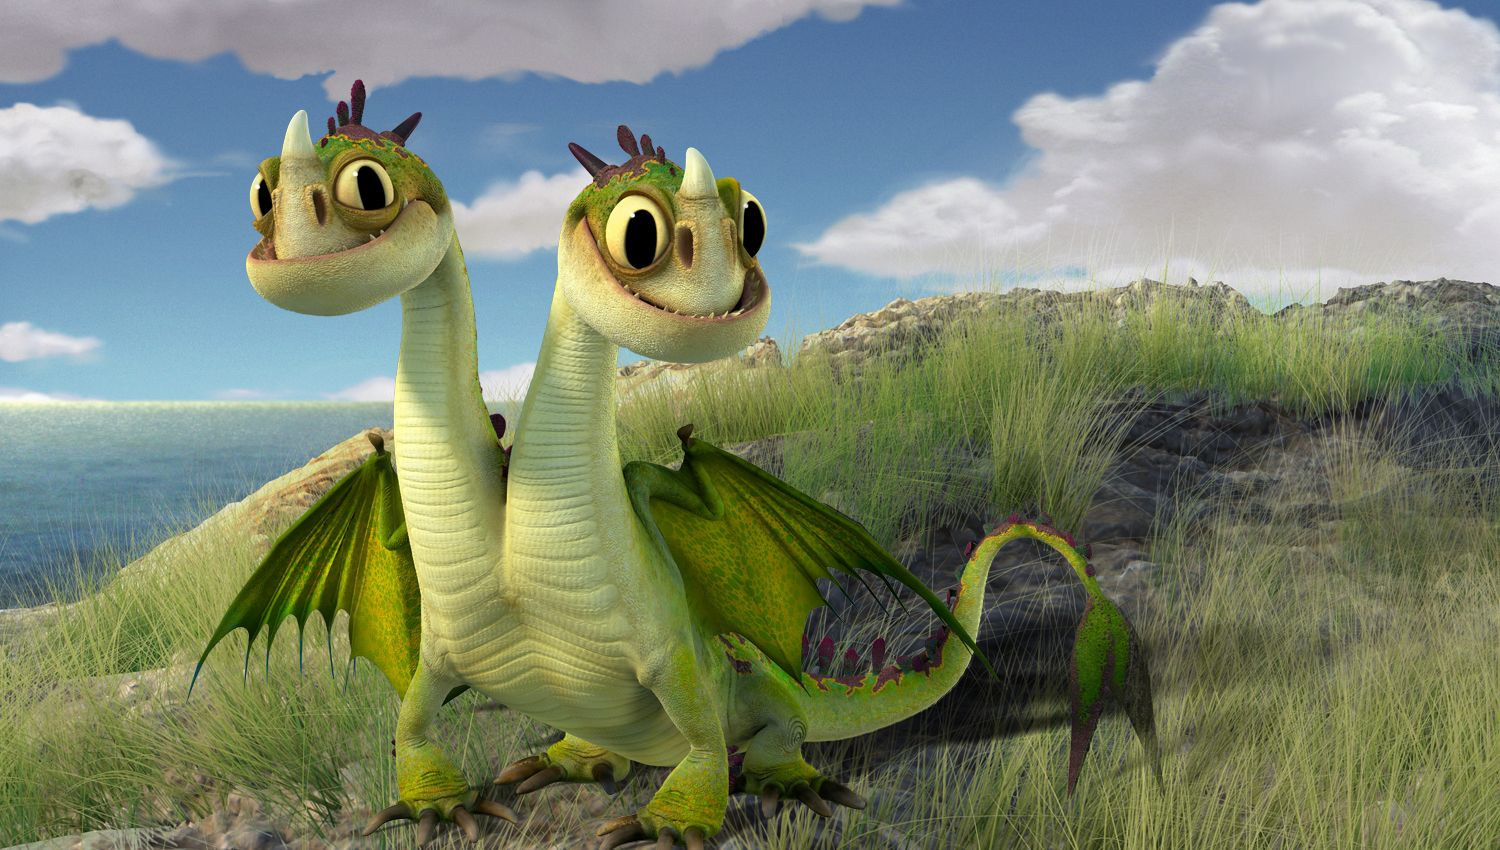 How to train your dragon dragons babys see more of baby zippleback how to train your dragon dragons babys see more of baby zippleback in ccuart Choice Image